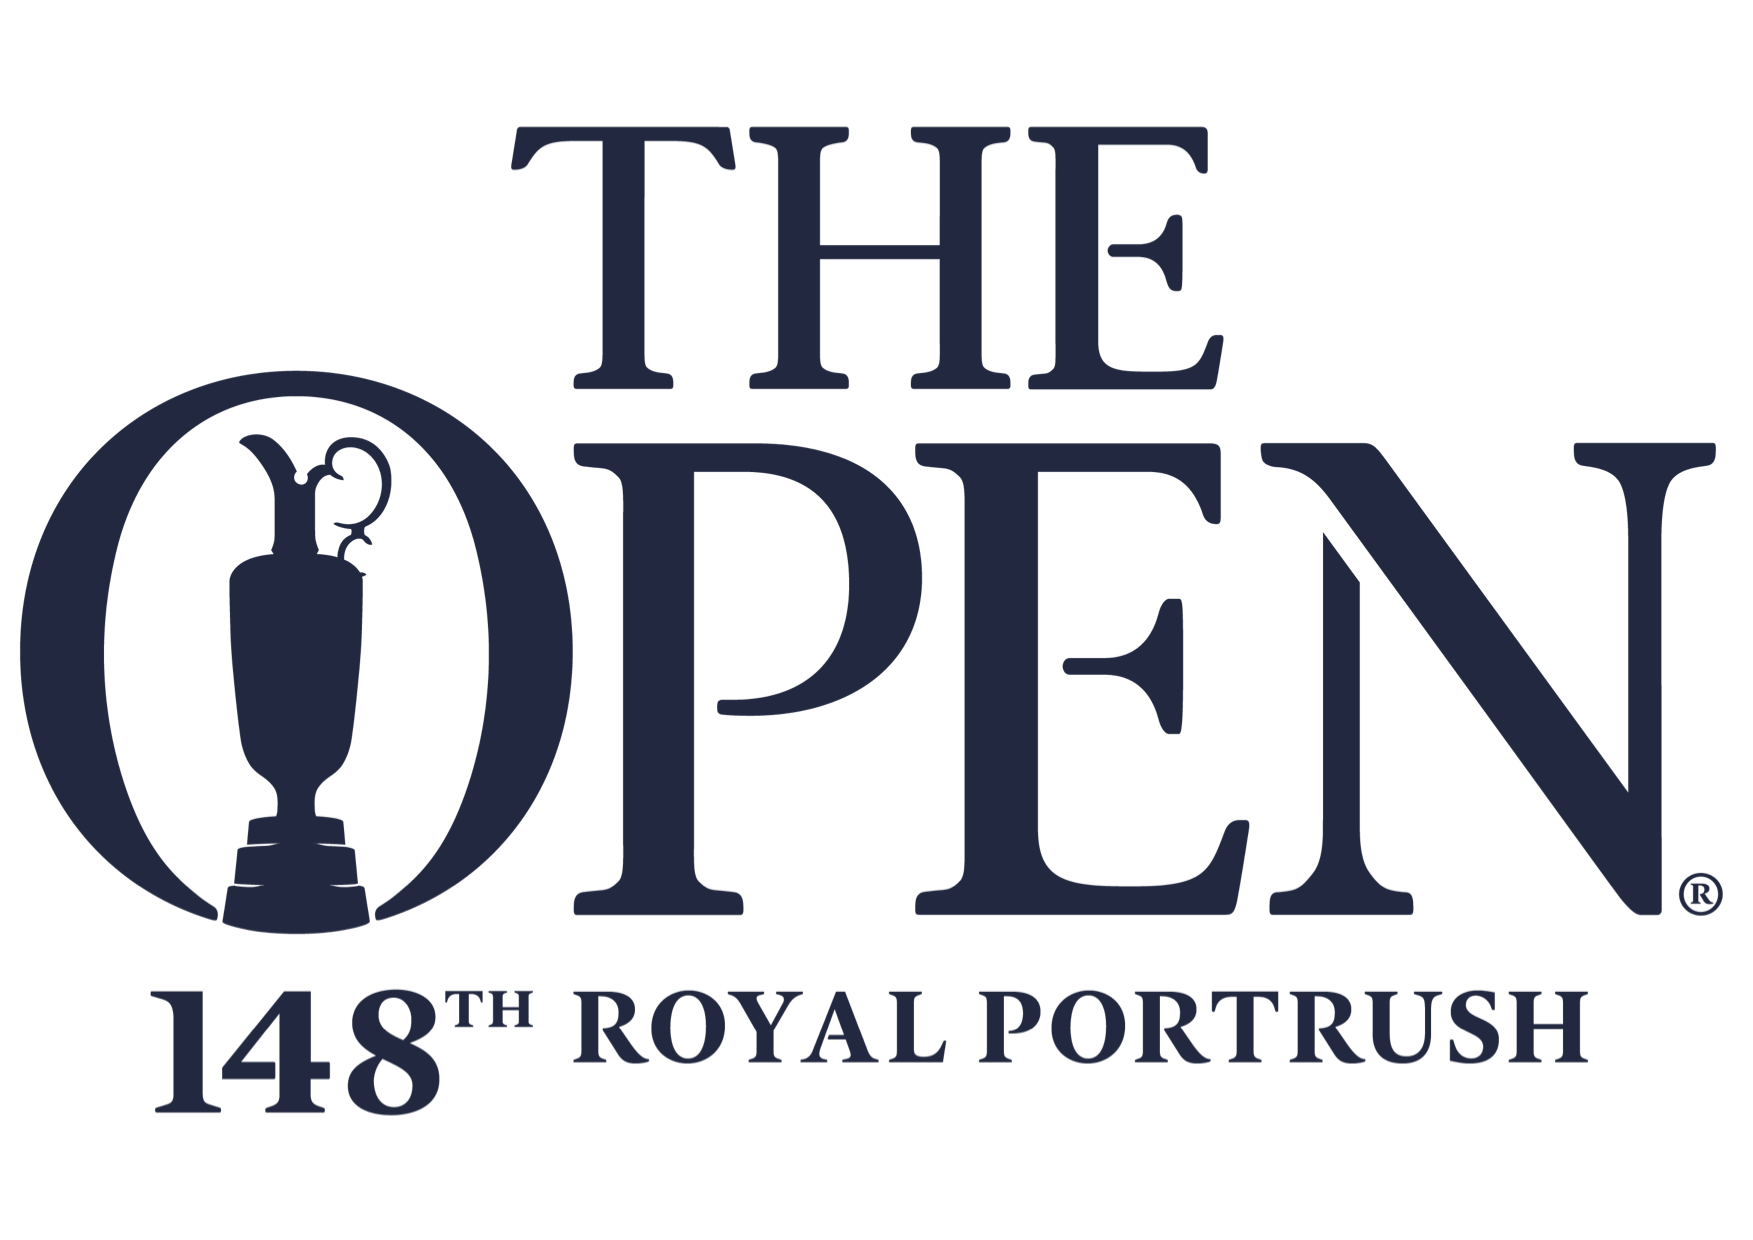 - The 2019 British Open Championship will be the 148th Open Championship, scheduled for 18–21 July at Royal Portrush Golf Club in Co. Antrim, Northern Ireland. It will be the second Open Championship at the course, 68 years after the first in 1951.